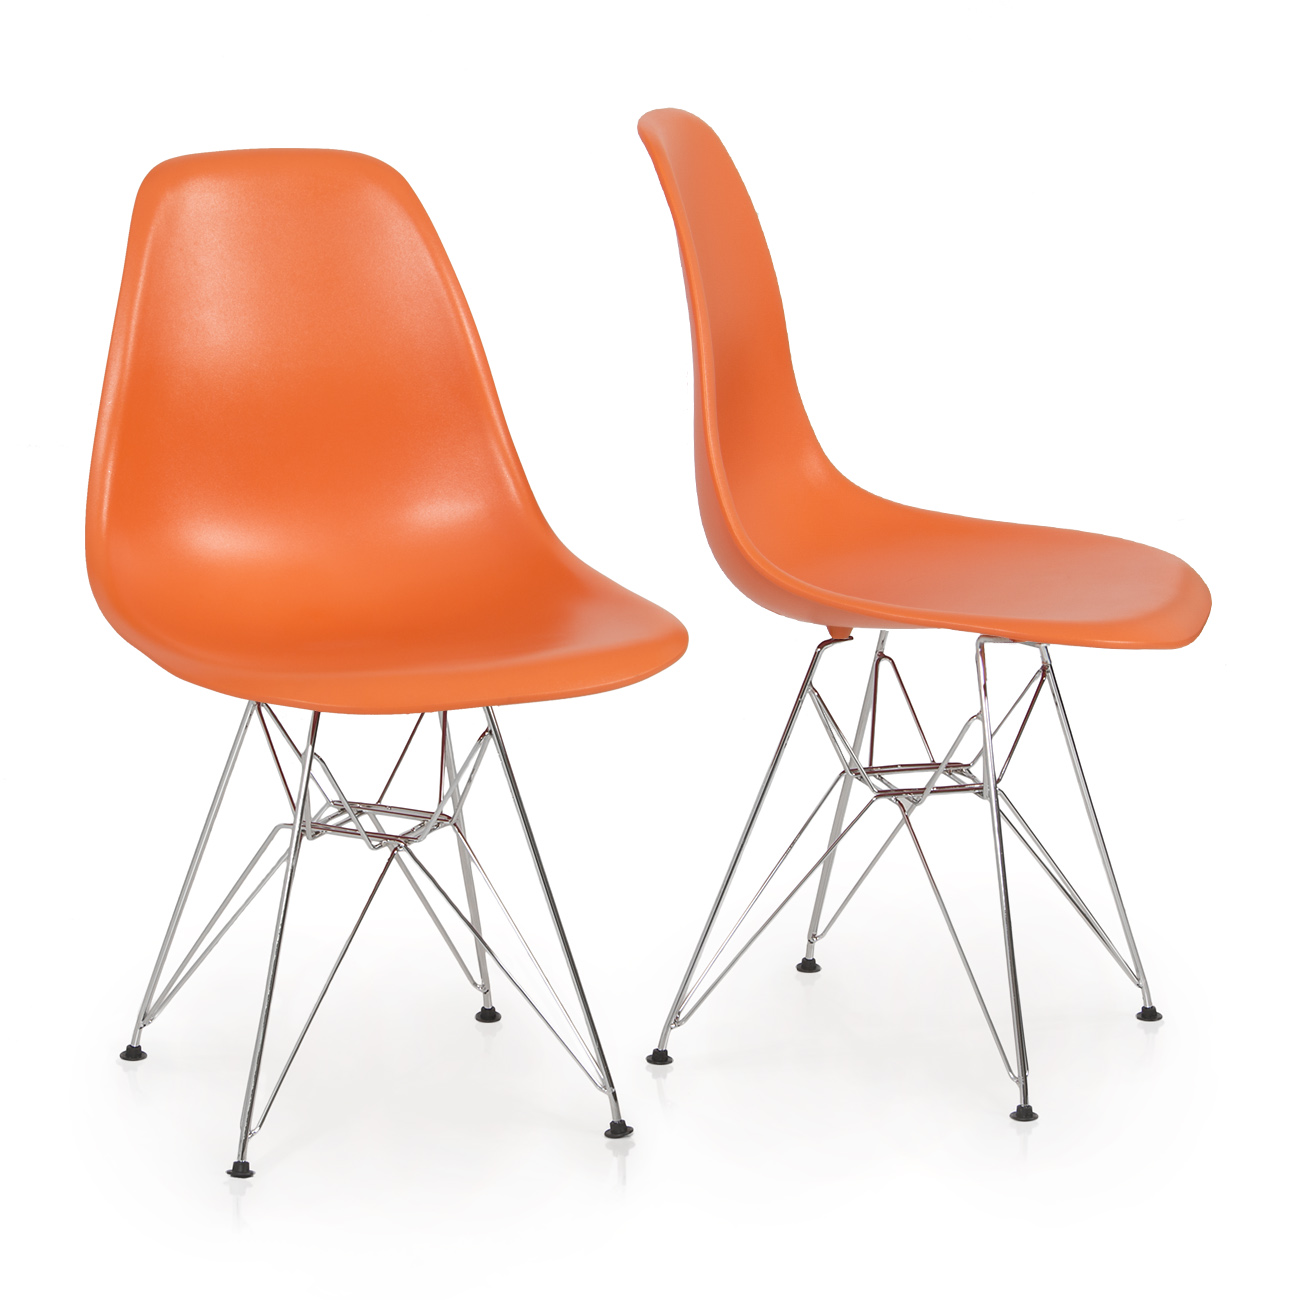 2x style dsw modern eiffel side chair molded abs plastic chairs wire base ebay. Black Bedroom Furniture Sets. Home Design Ideas